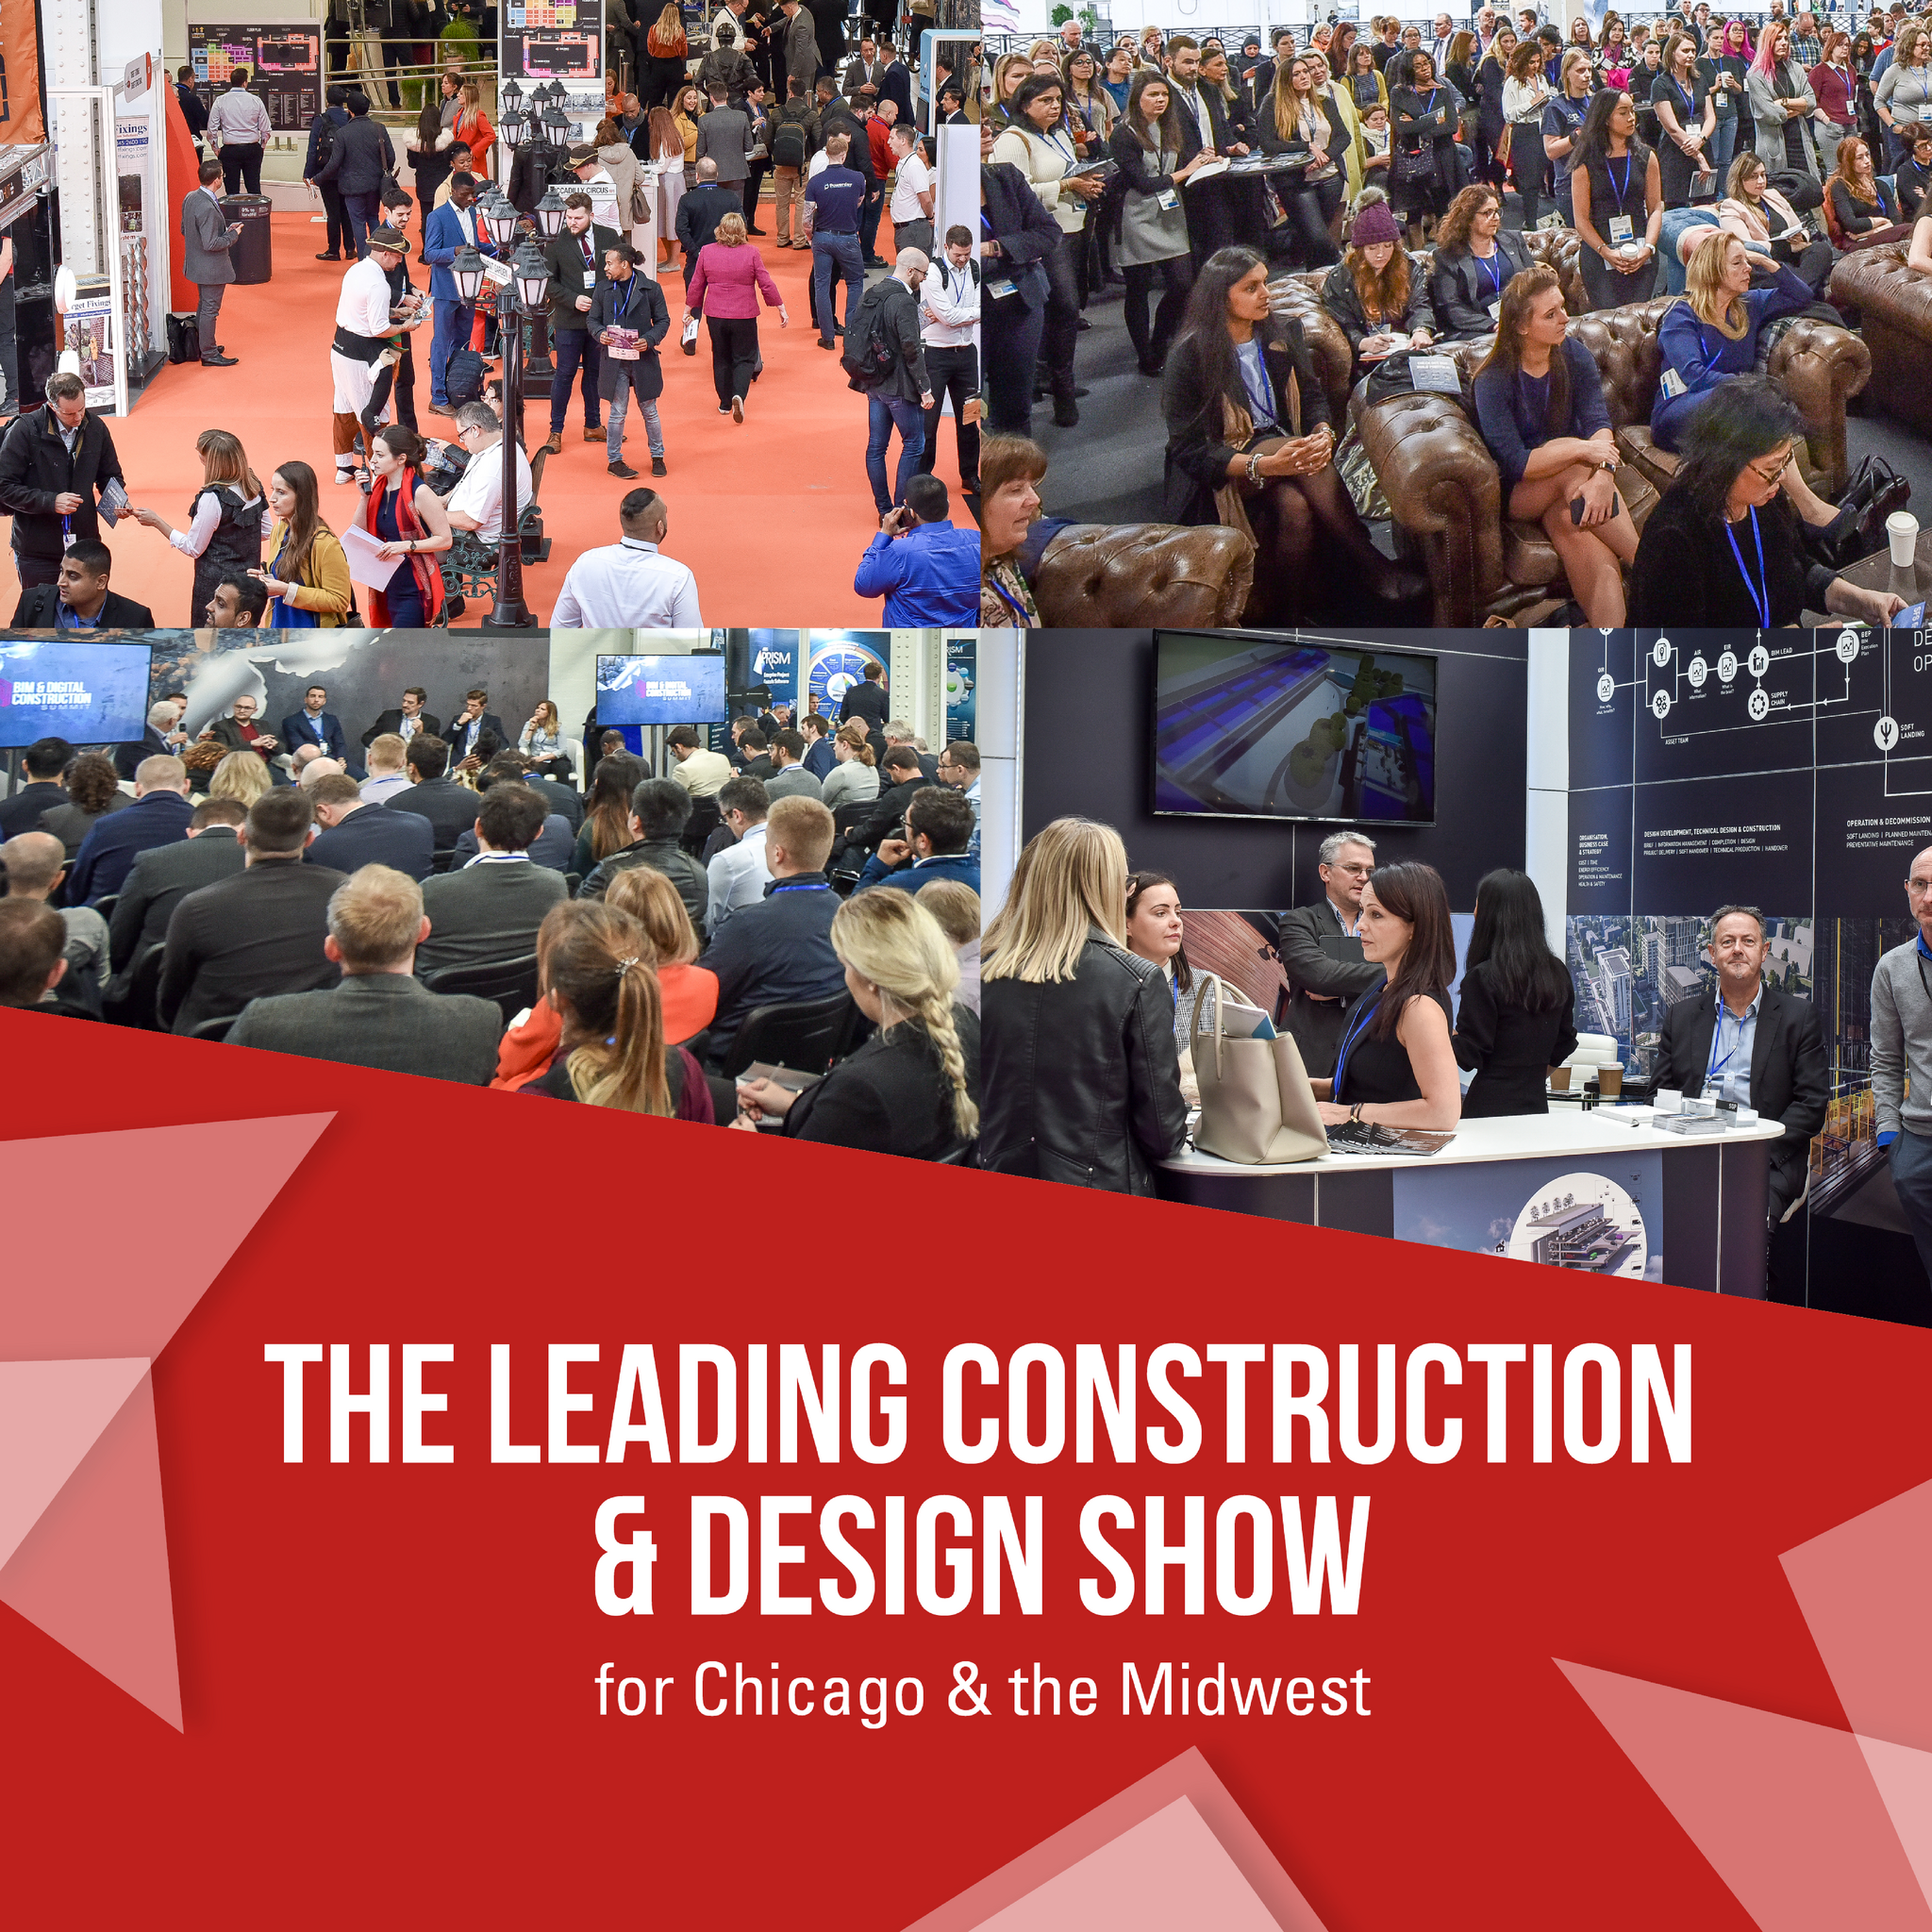 WELCOME - Chicago Build 2019 - THE LEADING CONSTRUCTION